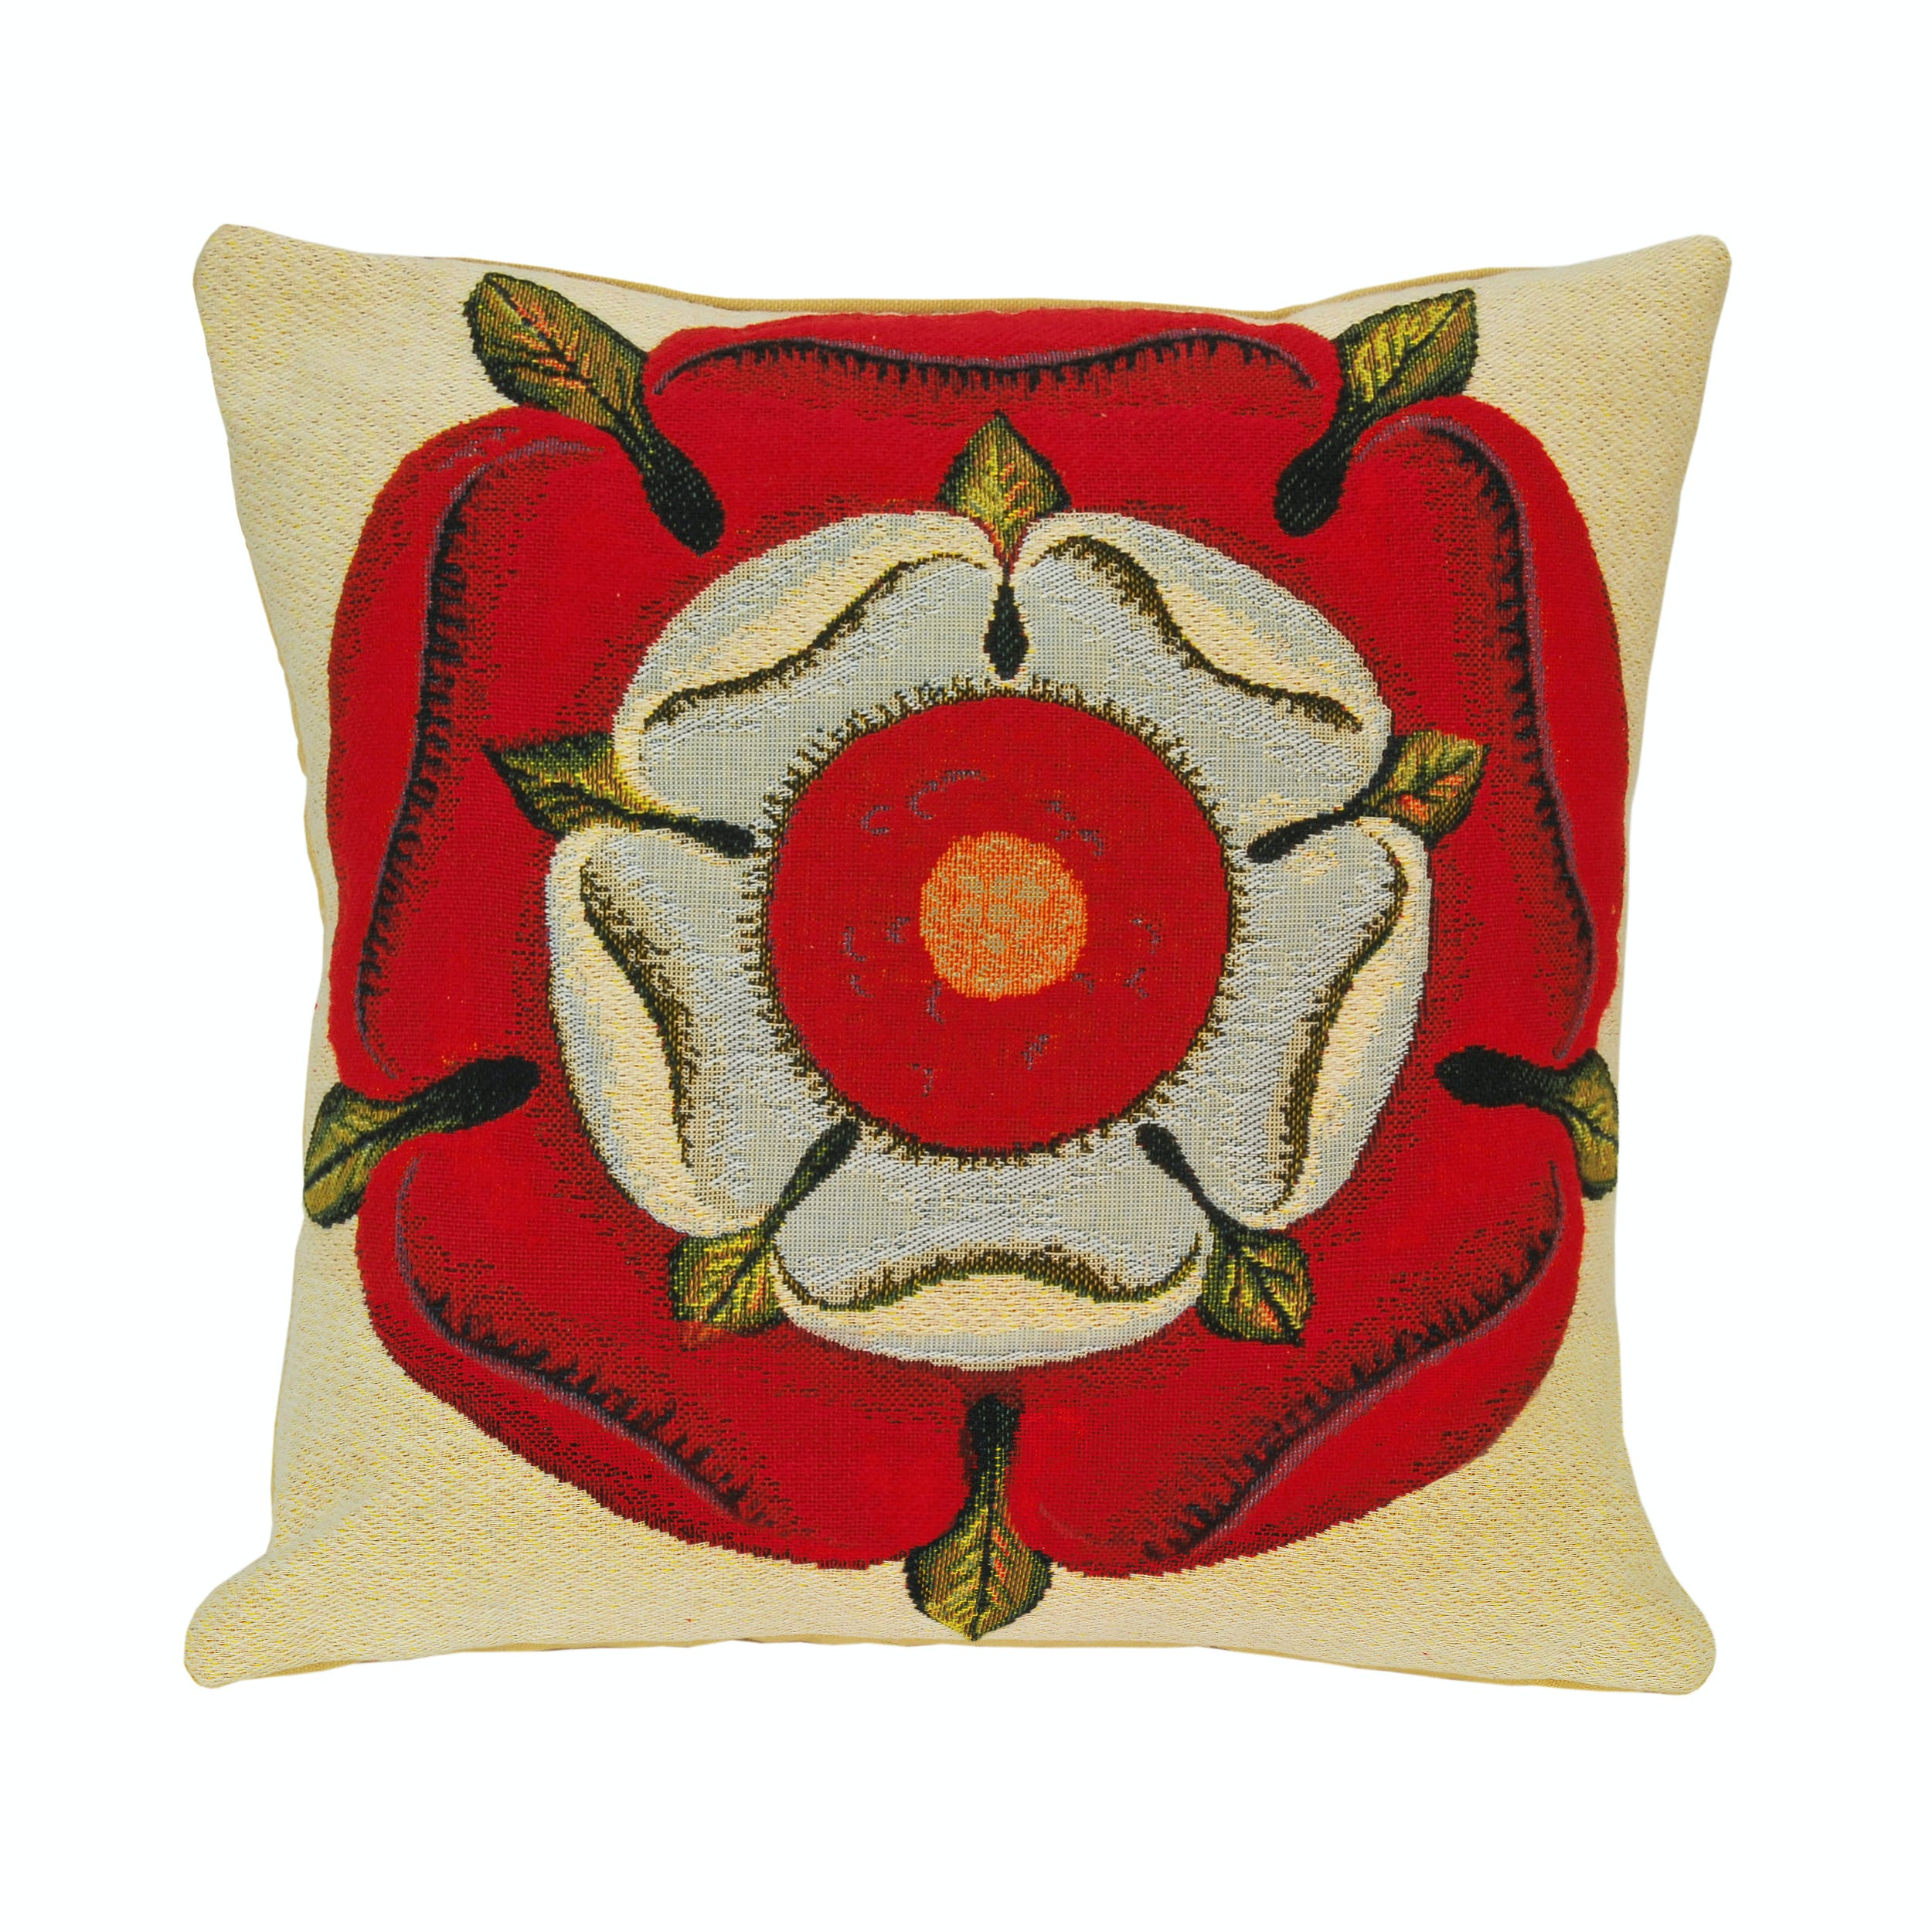 Tudor Rose Cushion - Perfect for a history lover, this Tudor rose cushion symbolises the joining of two rival houses, York and Lancaster.